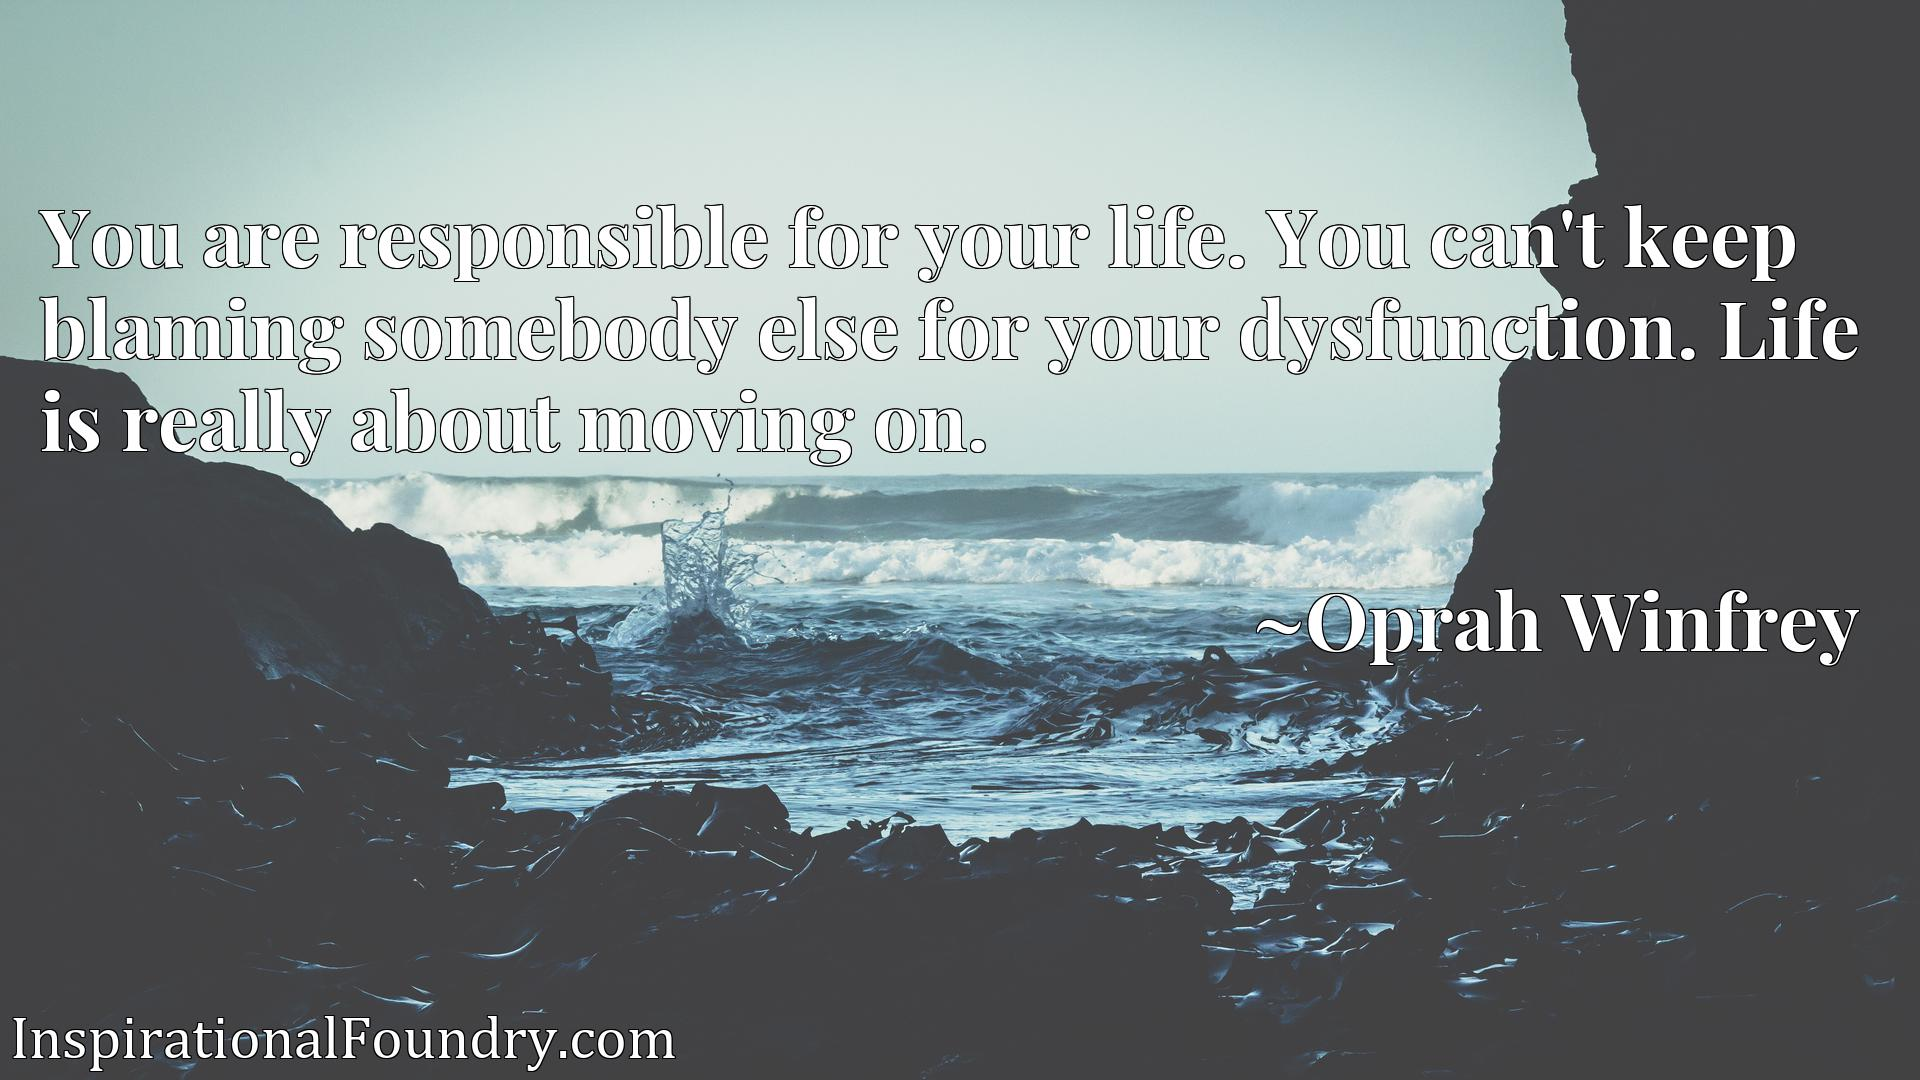 Quote Picture :You are responsible for your life. You can't keep blaming somebody else for your dysfunction. Life is really about moving on.